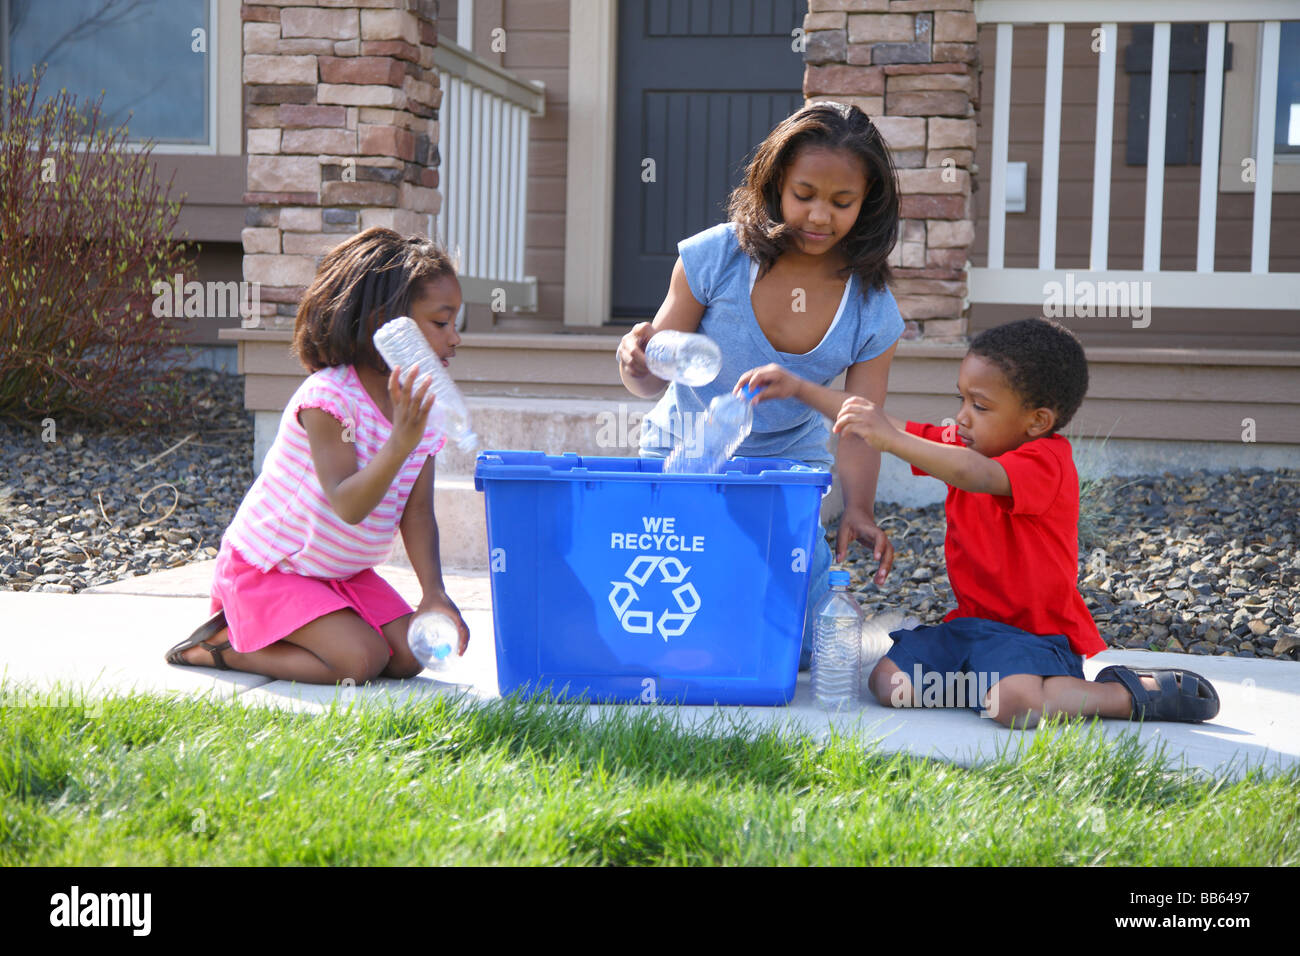 Three children putting items into recycle bin - Stock Image